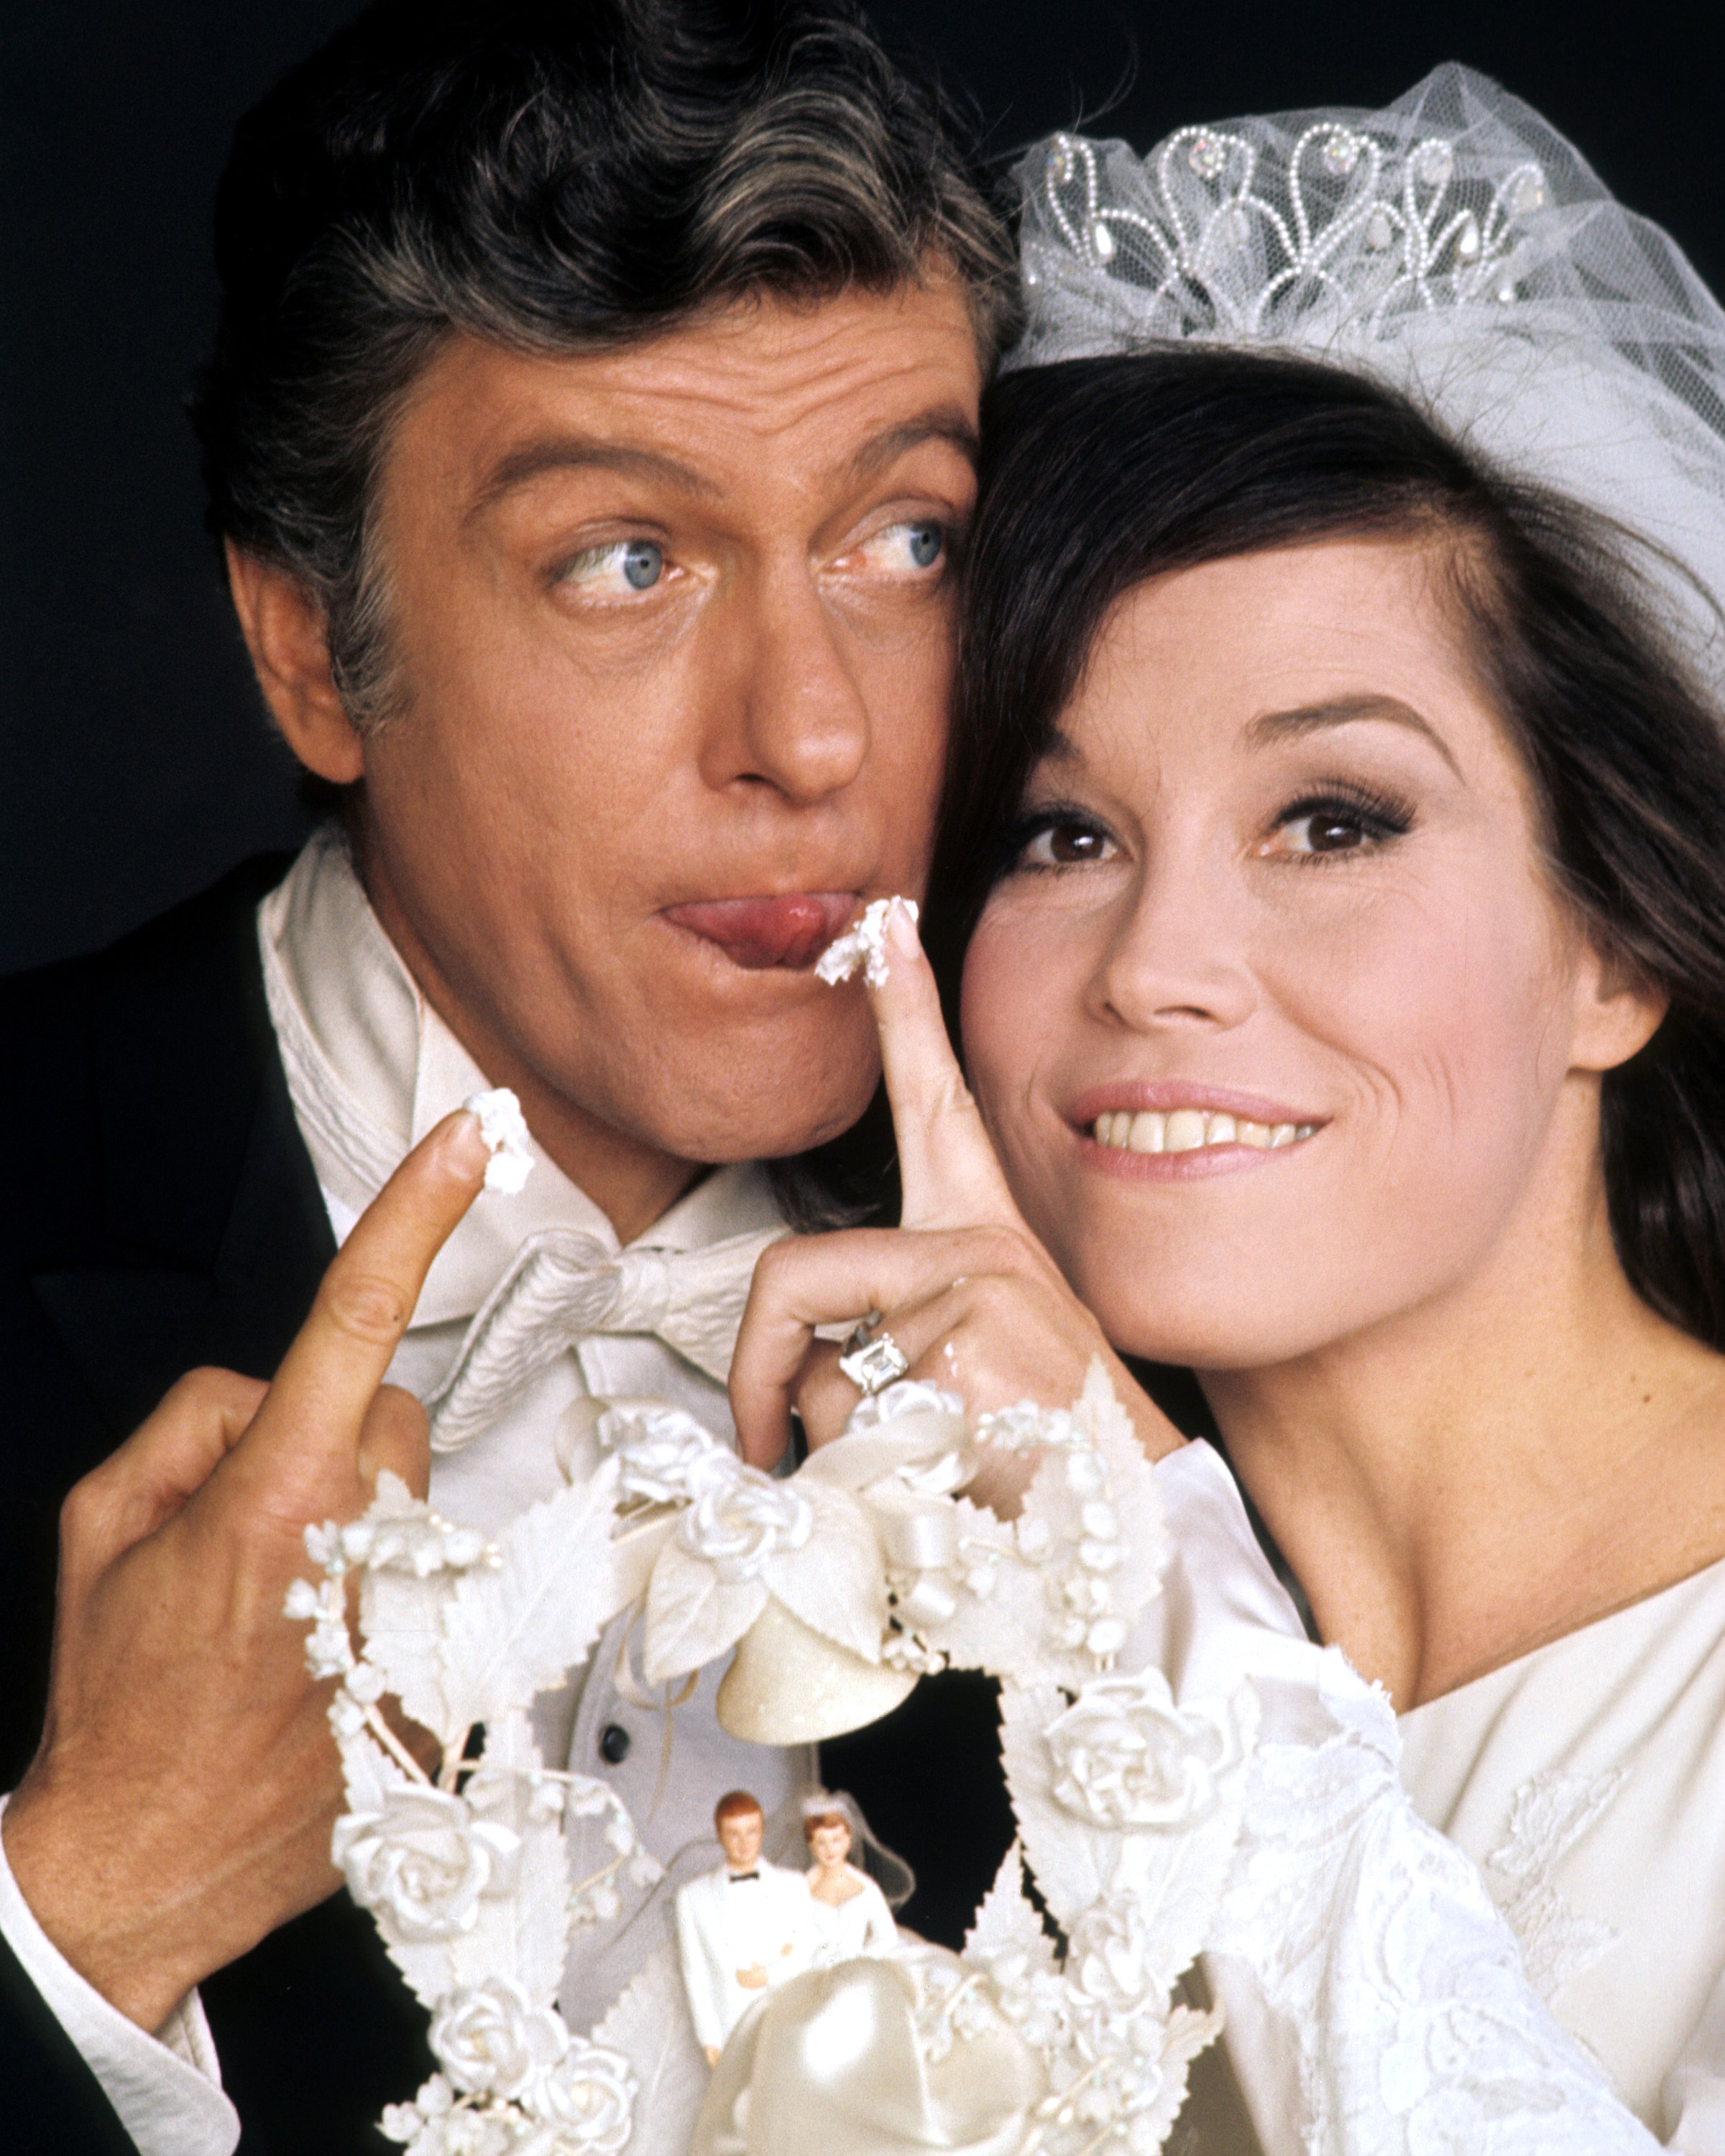 Dick Van Dyke, US actor, and Mary Tyler Moore, US actress, in a wedding dress, with a piece of icing from a wedding cake on her finger, in a publicity portrait issued for the US television special, 'Dick Van Dyke and the Other Woman', USA, 1969. | Source: Getty Images